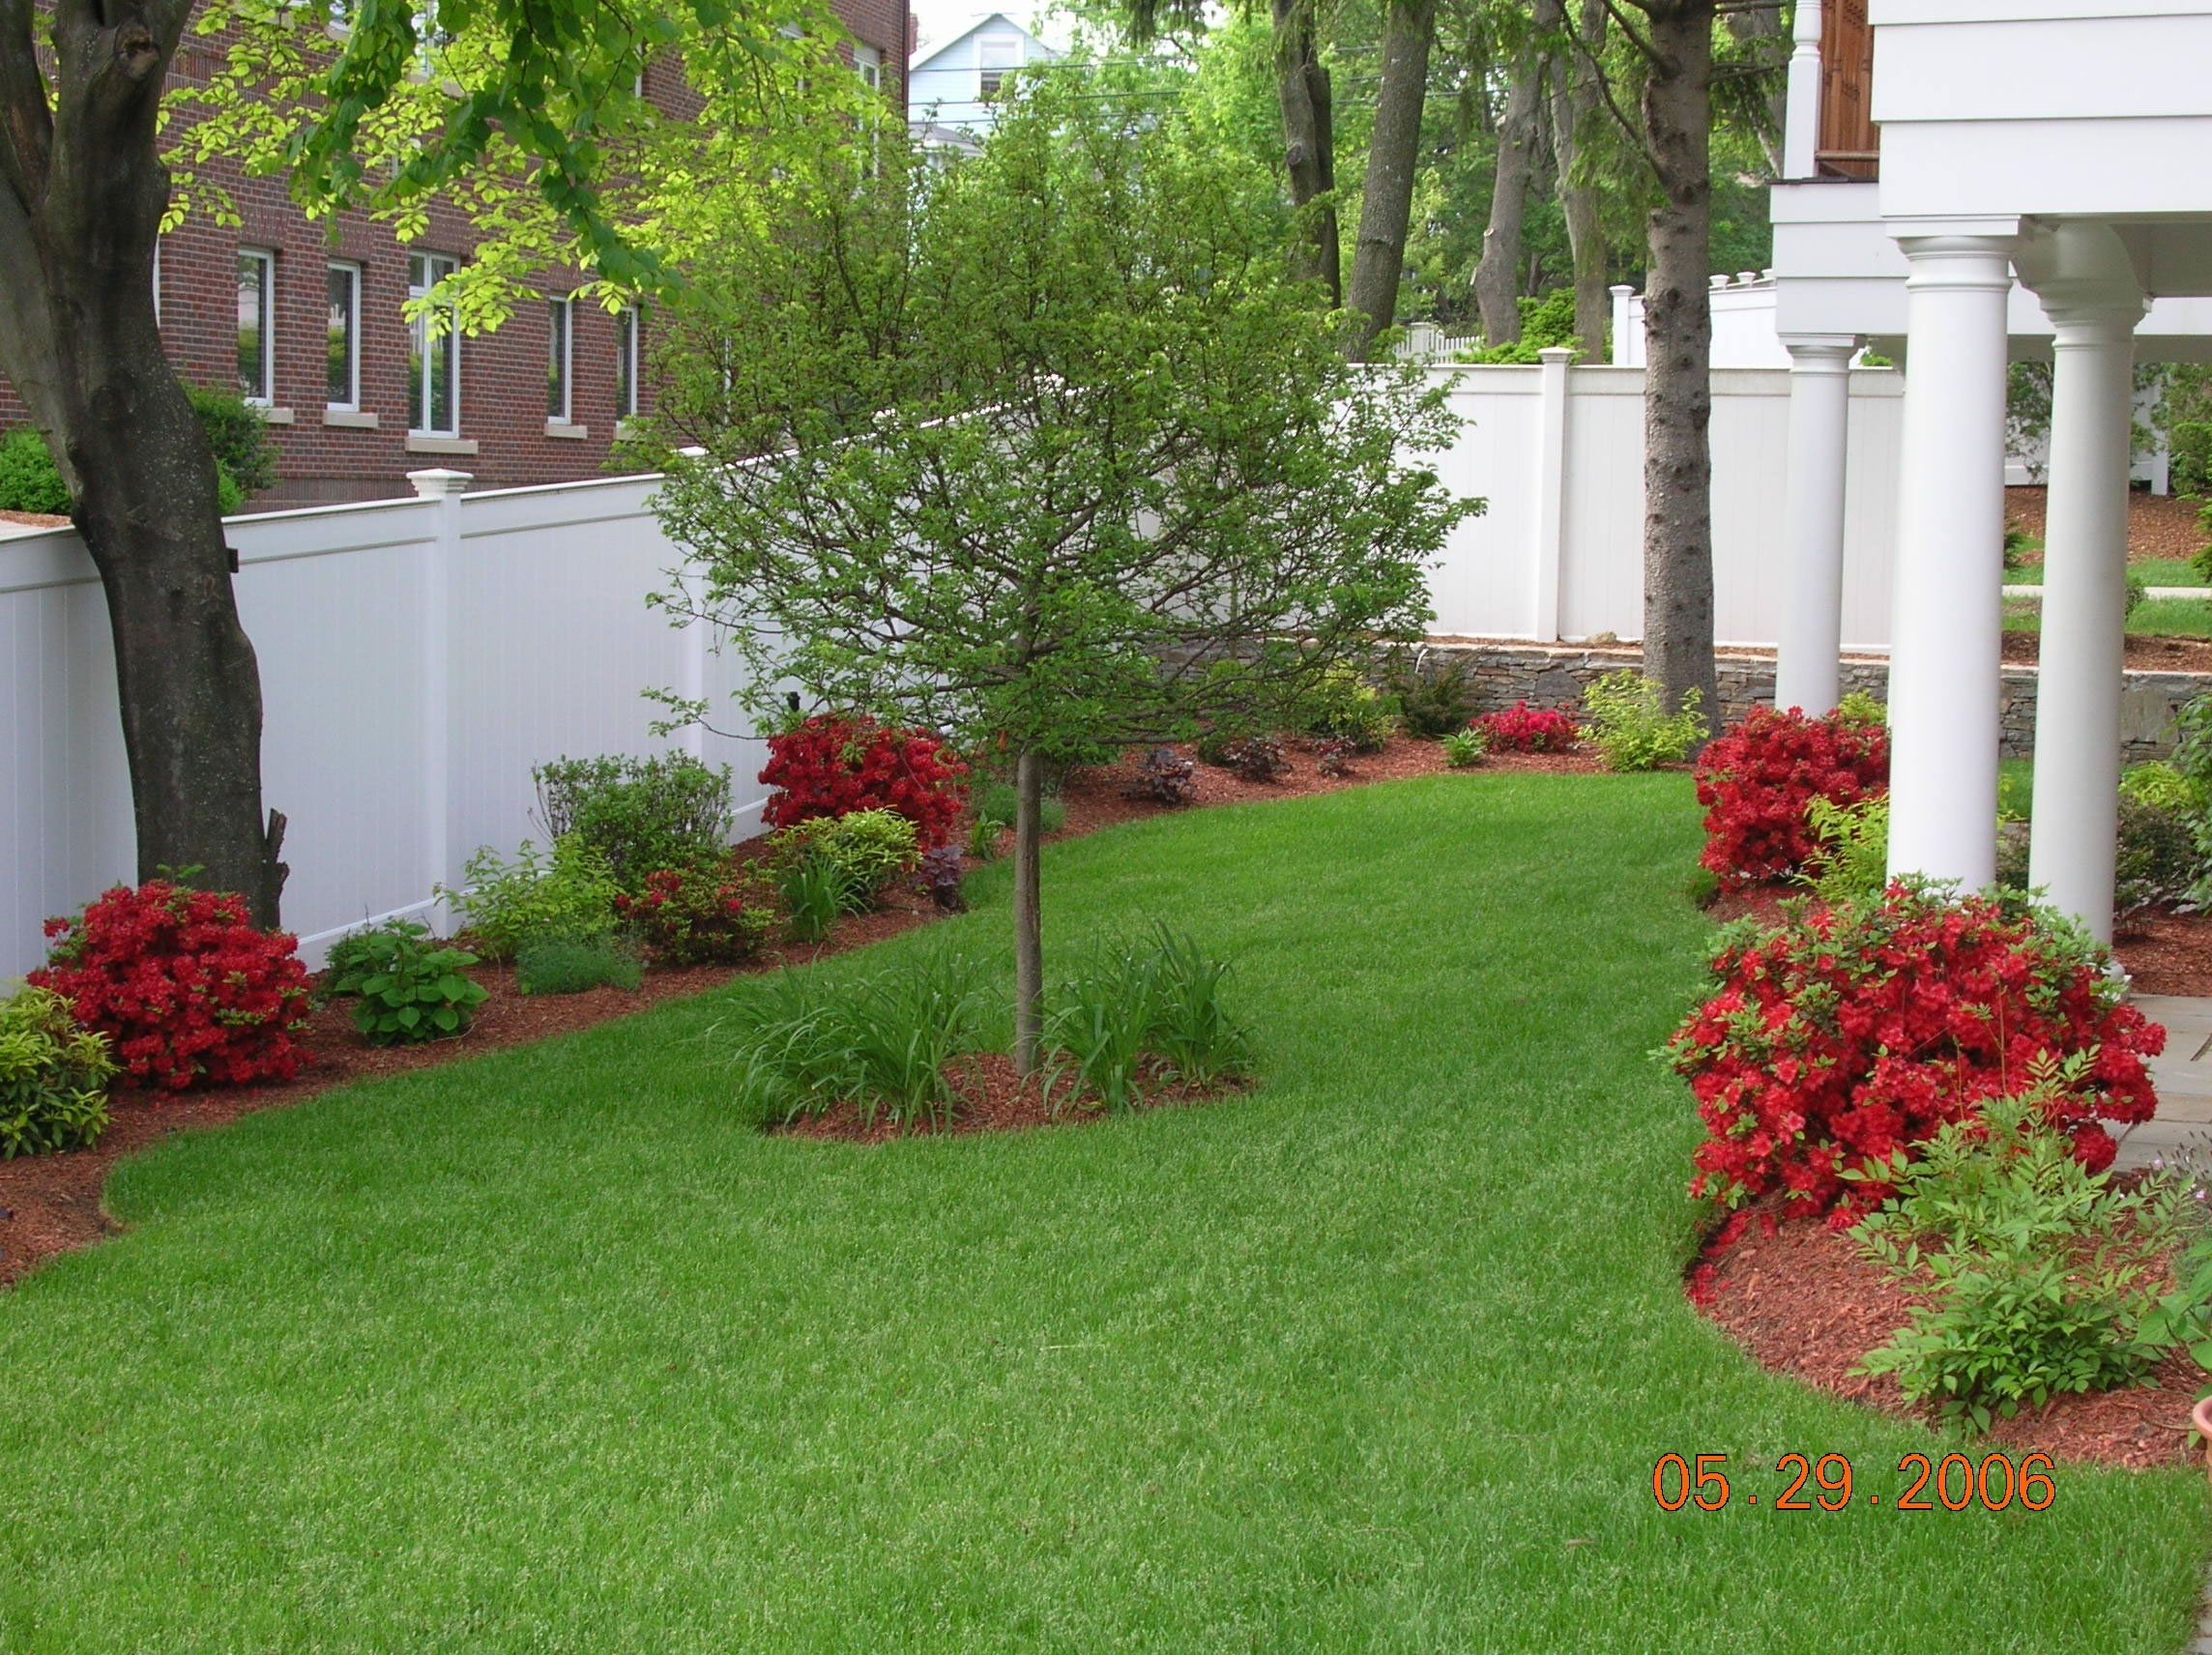 Top 10 simple diy landscaping ideas seek diy for Backyard landscape design ideas